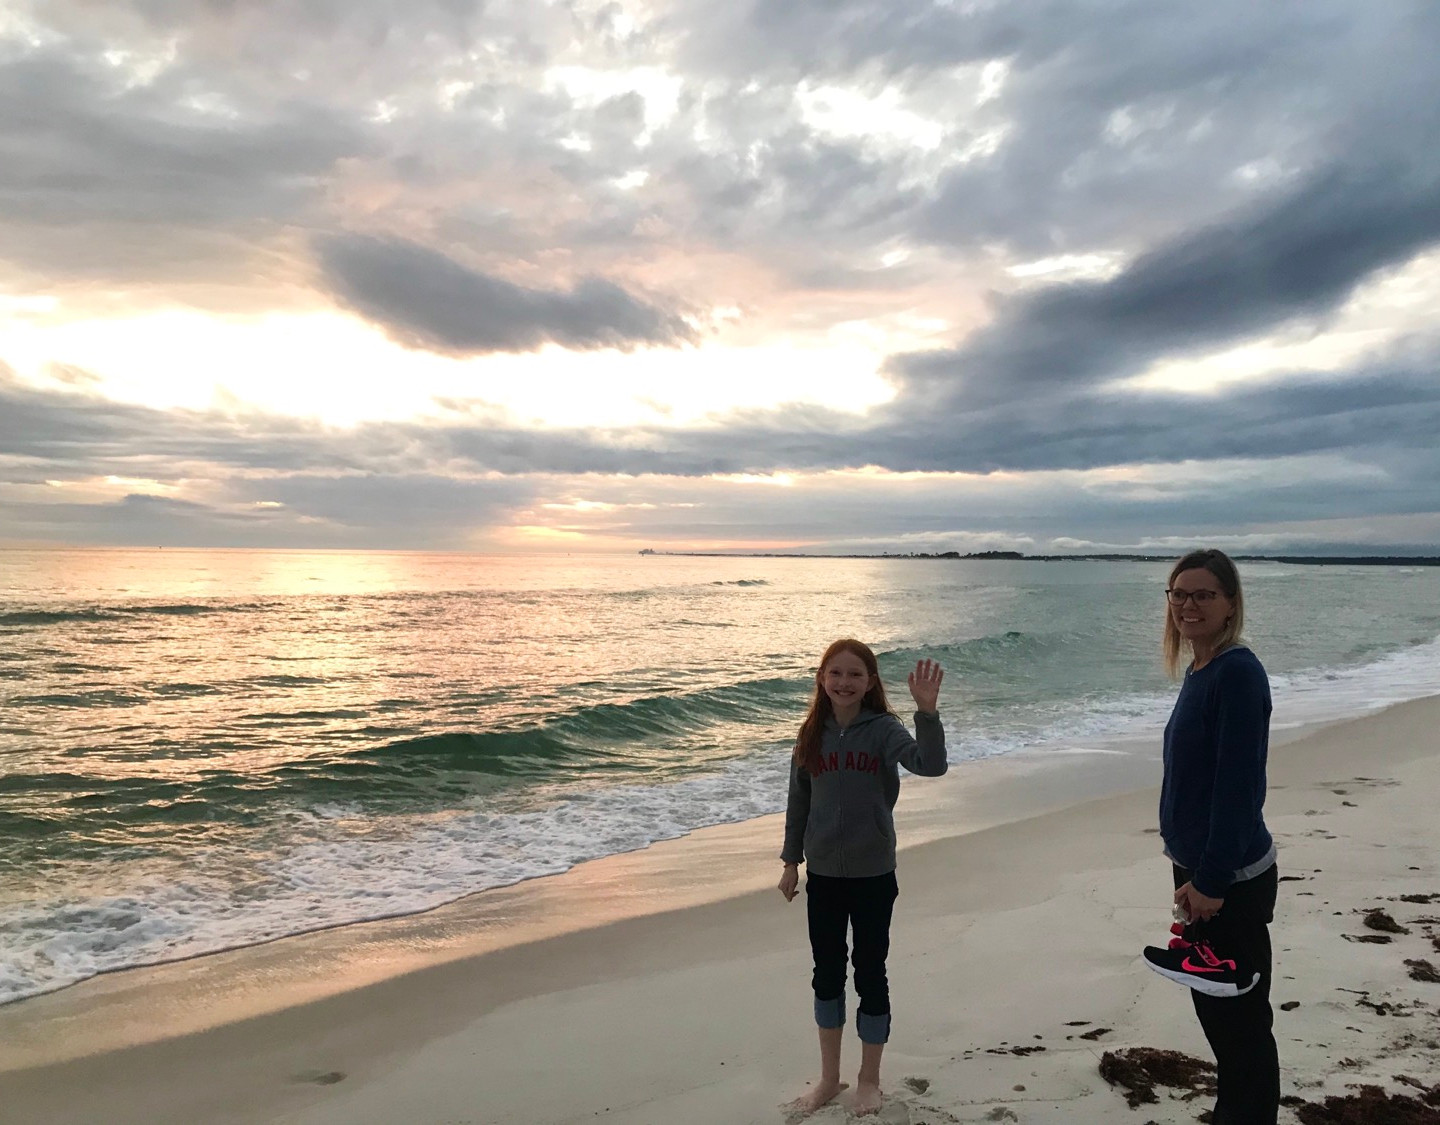 Sunset on the Gulf of Mexico side. We saw a group of dolphins playing just off shore.